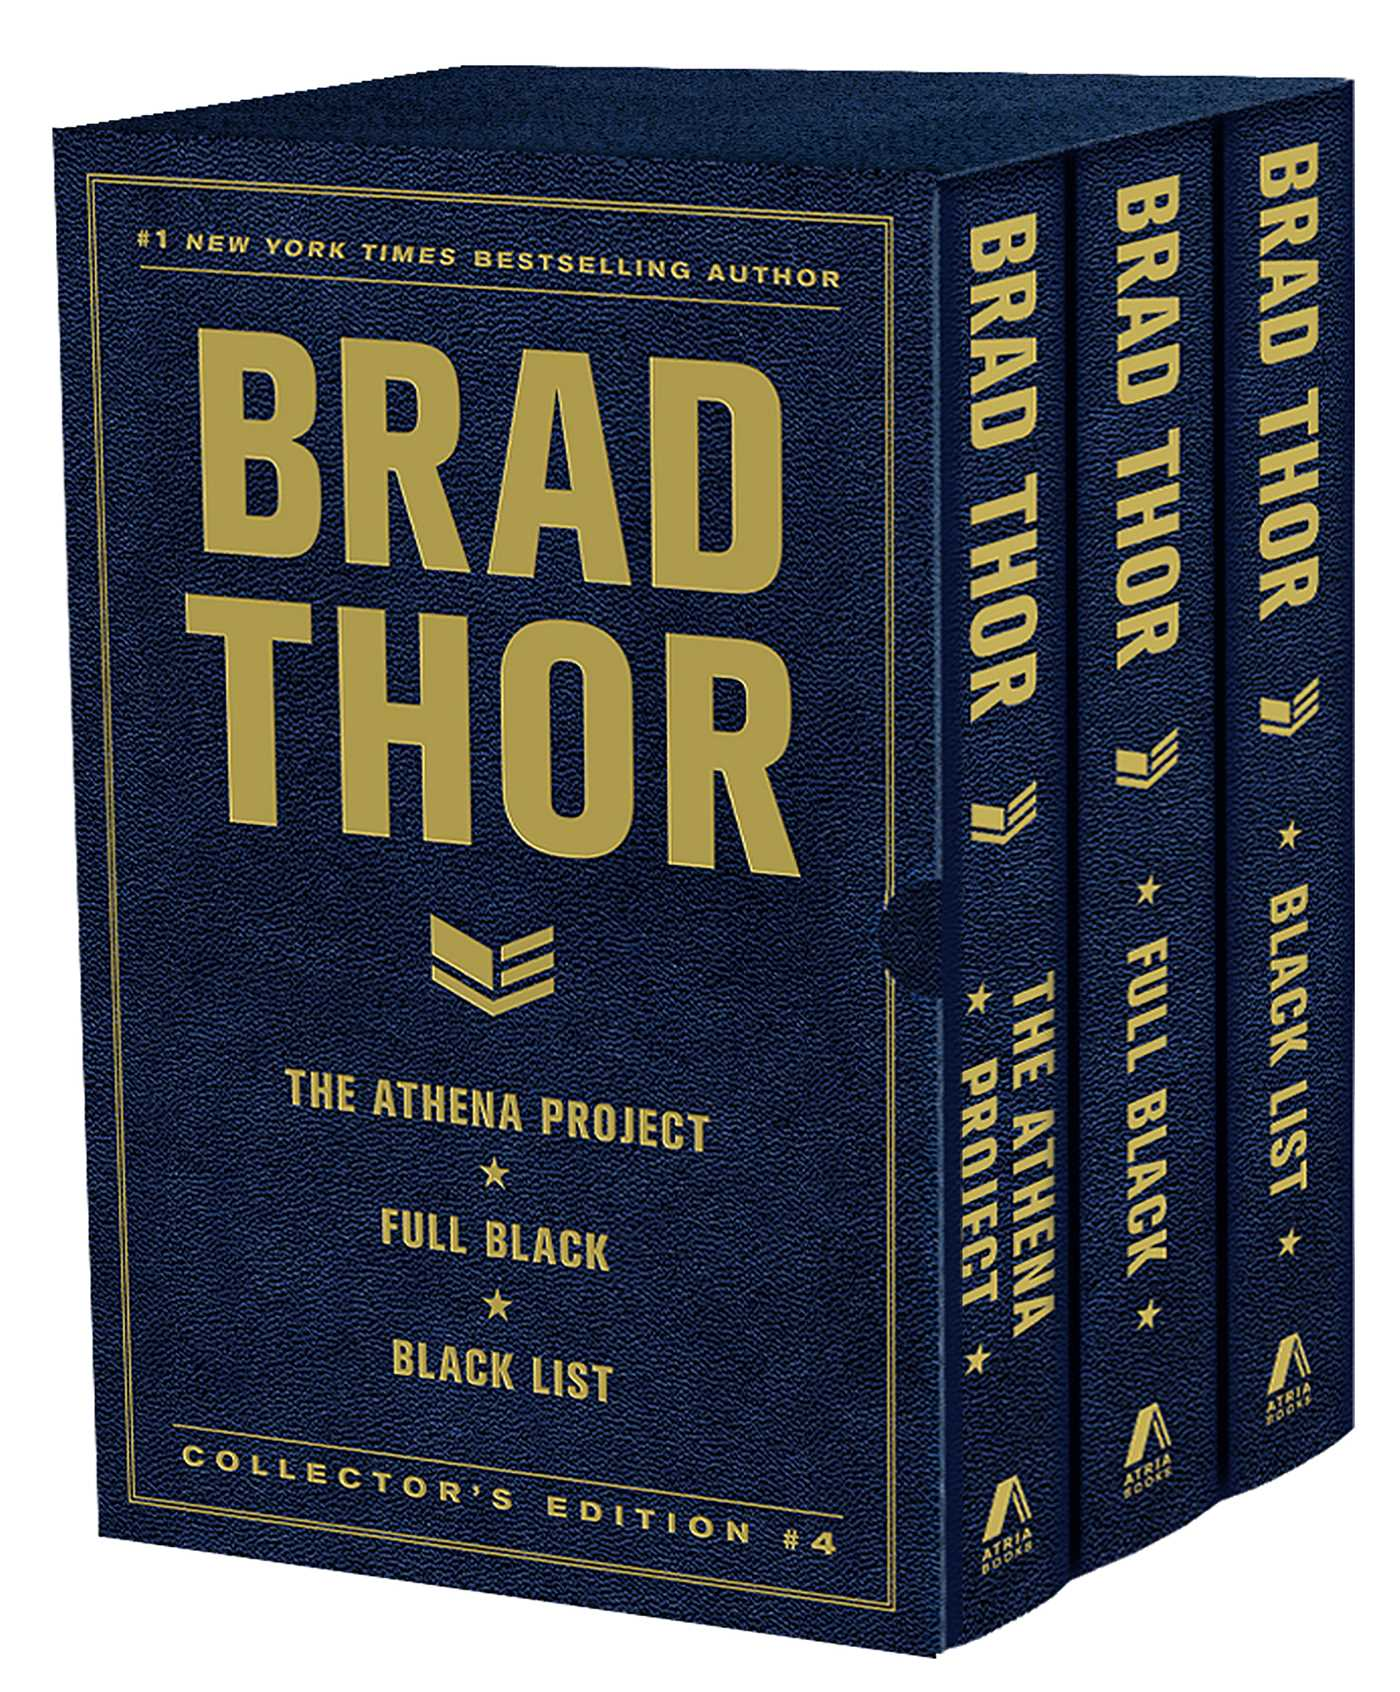 Brad-thor-collectors-edition-4-9781476773650_hr